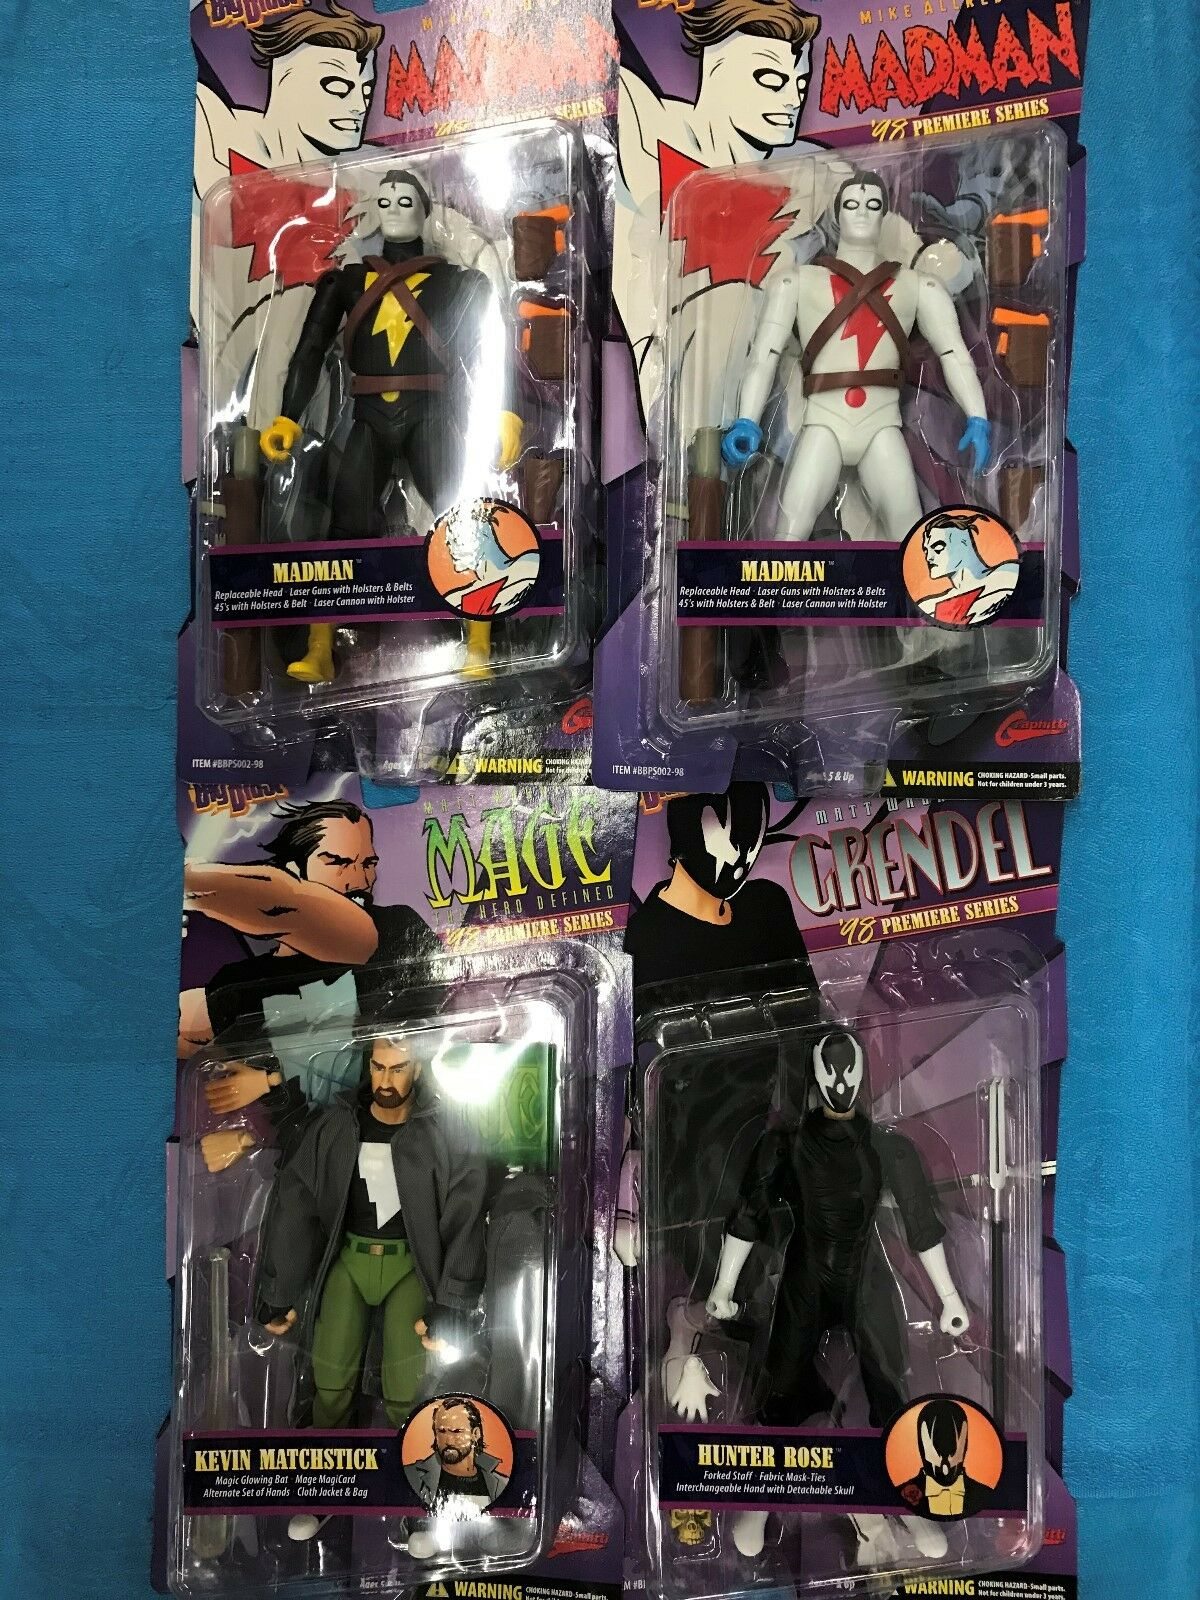 Madman x2 w accessories, Grendel, Mage Action Figure set - Graphitti - Big Blast